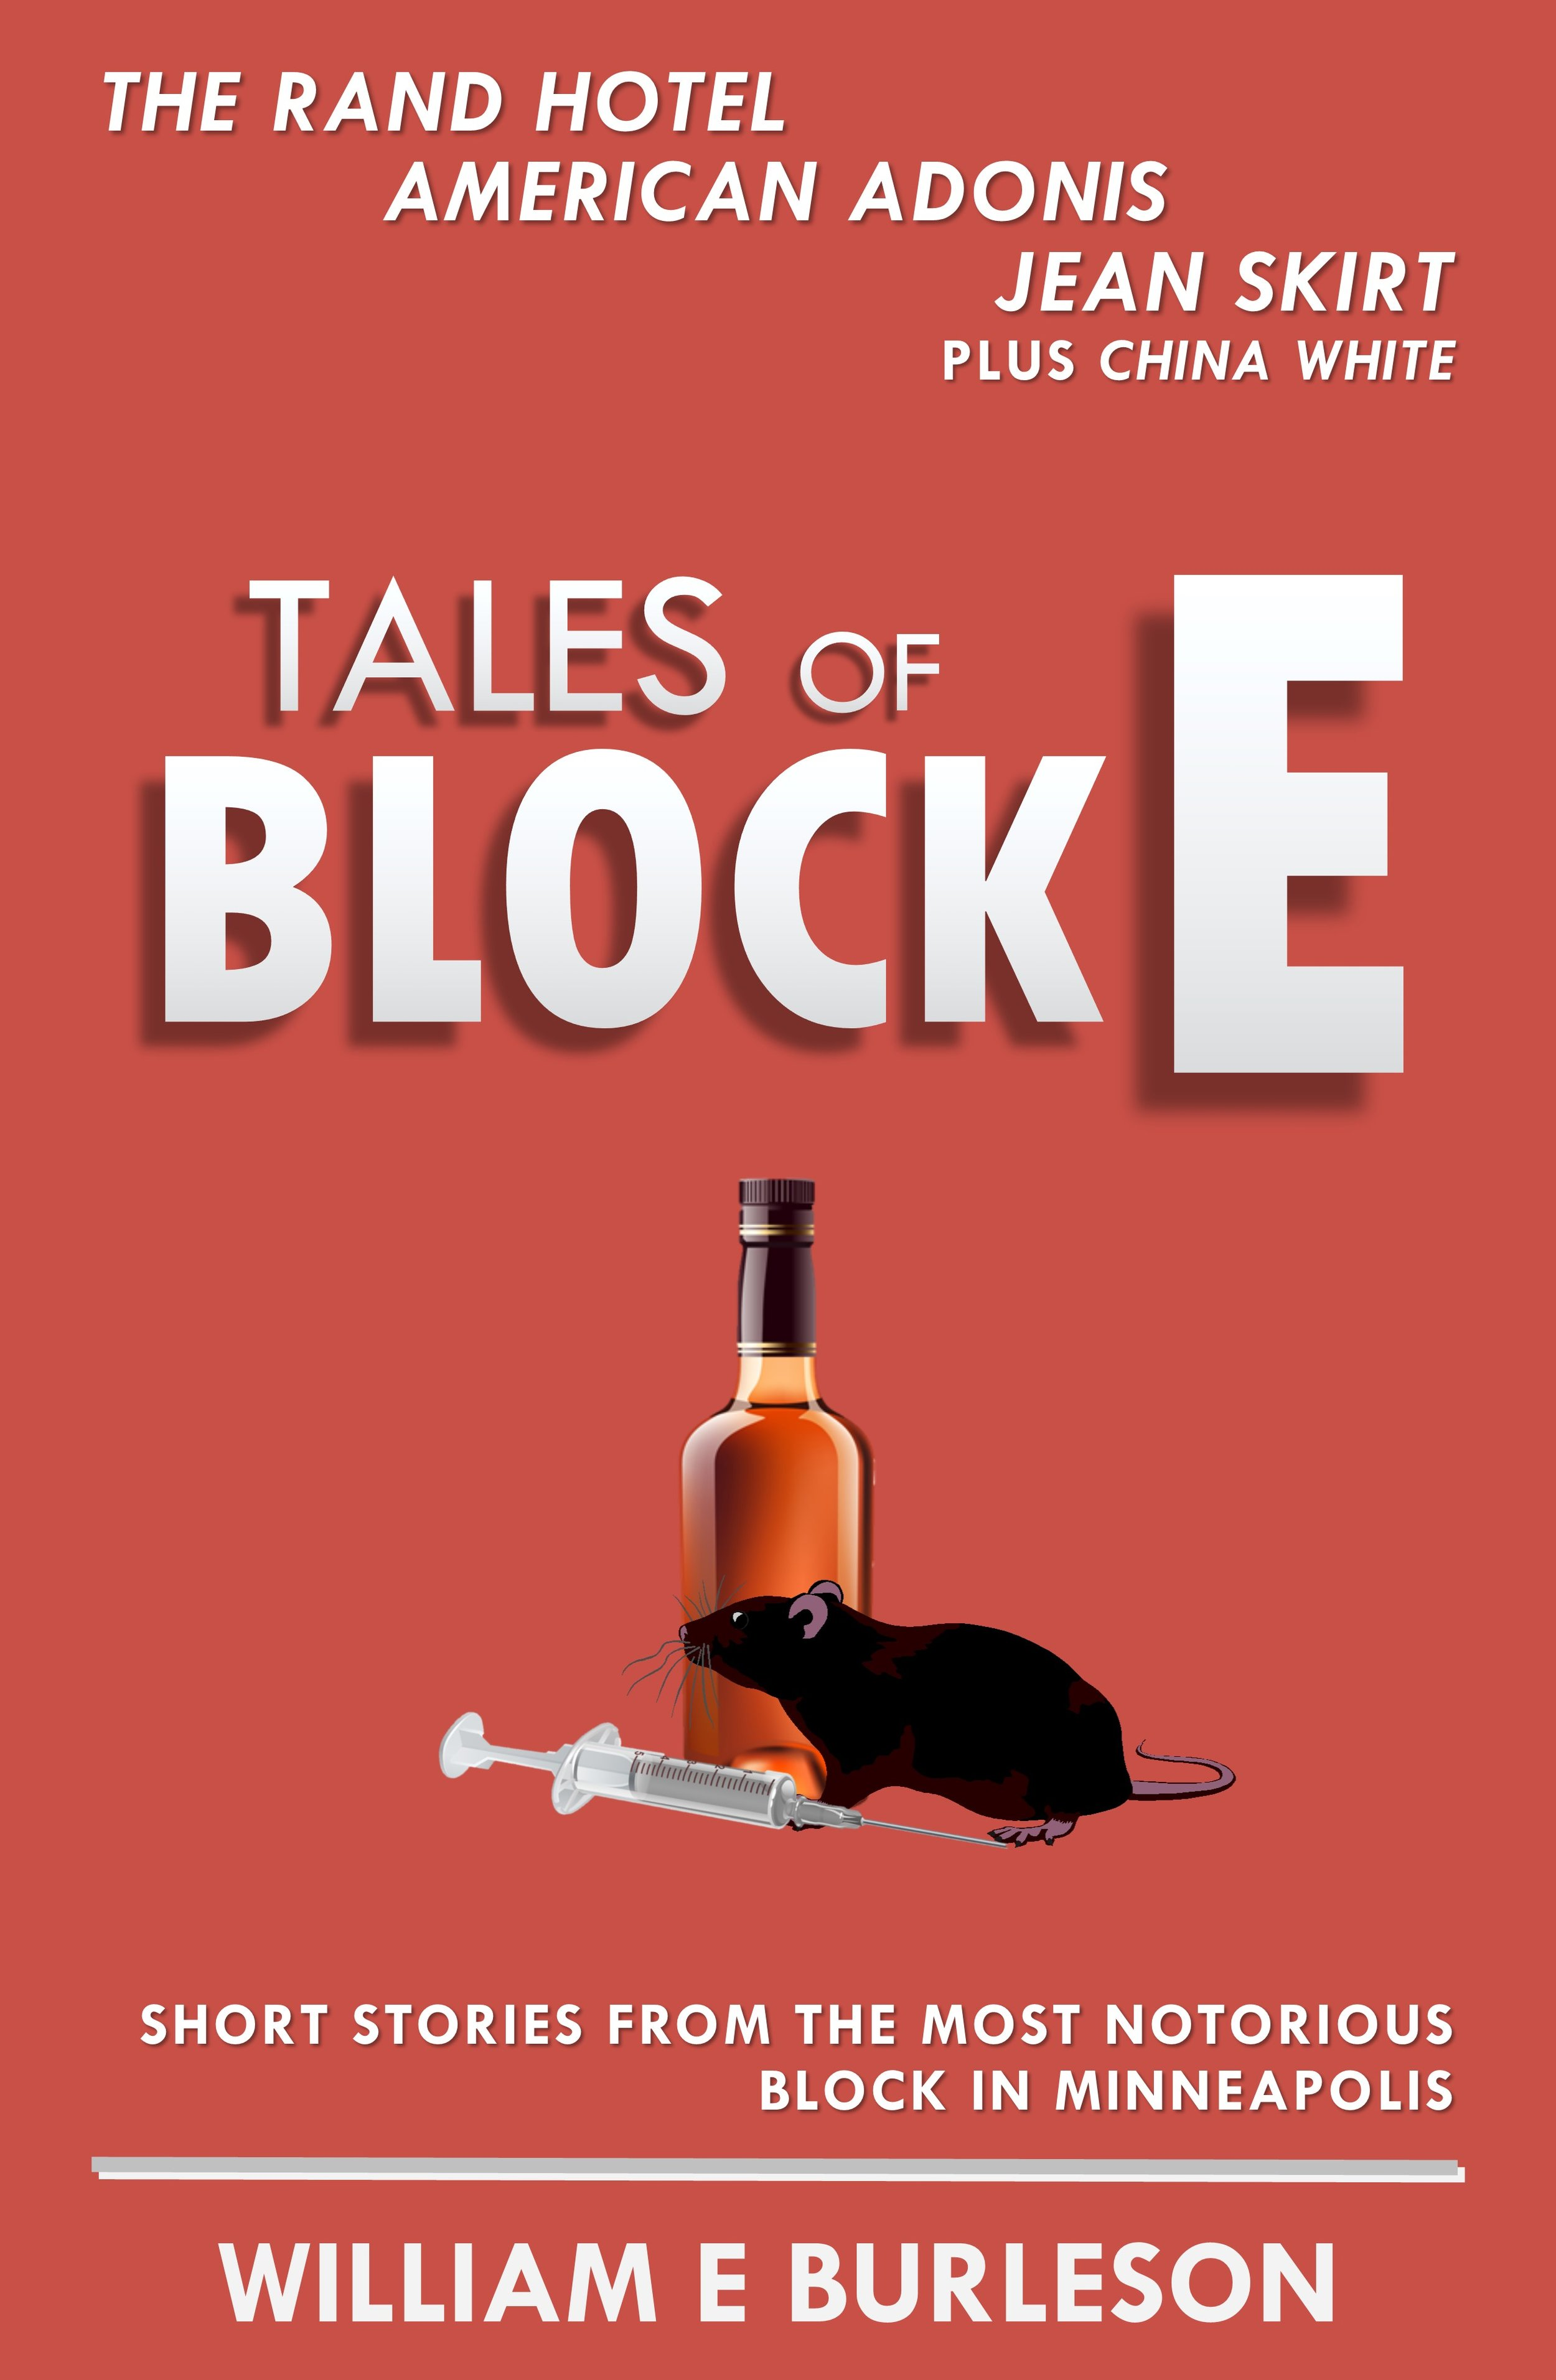 TALES OF BLOCK E e book.jpg